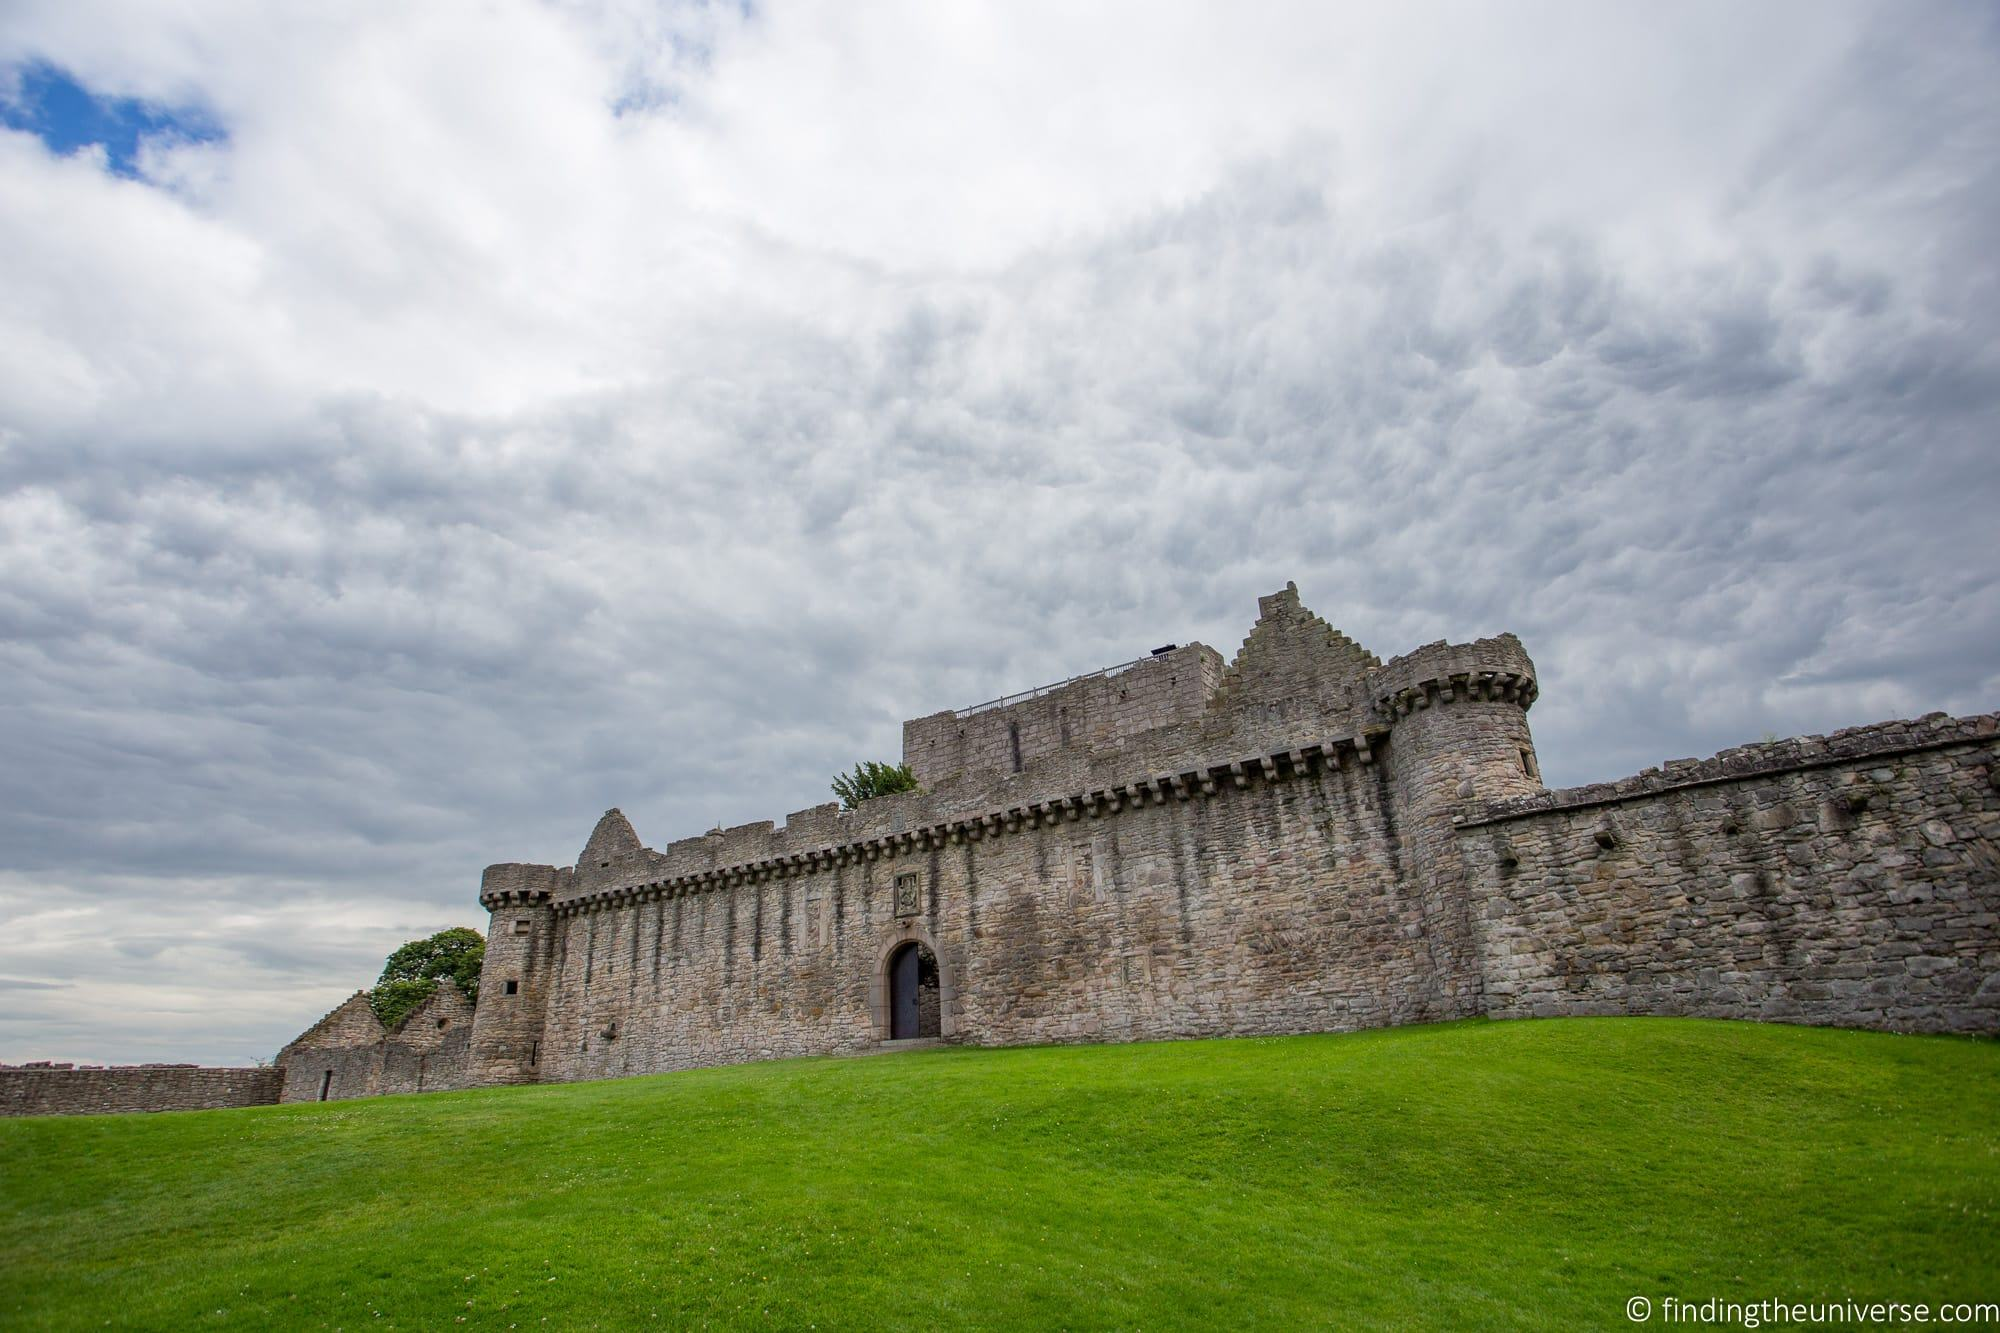 Outlander Filming Location - Craigmillar Castle